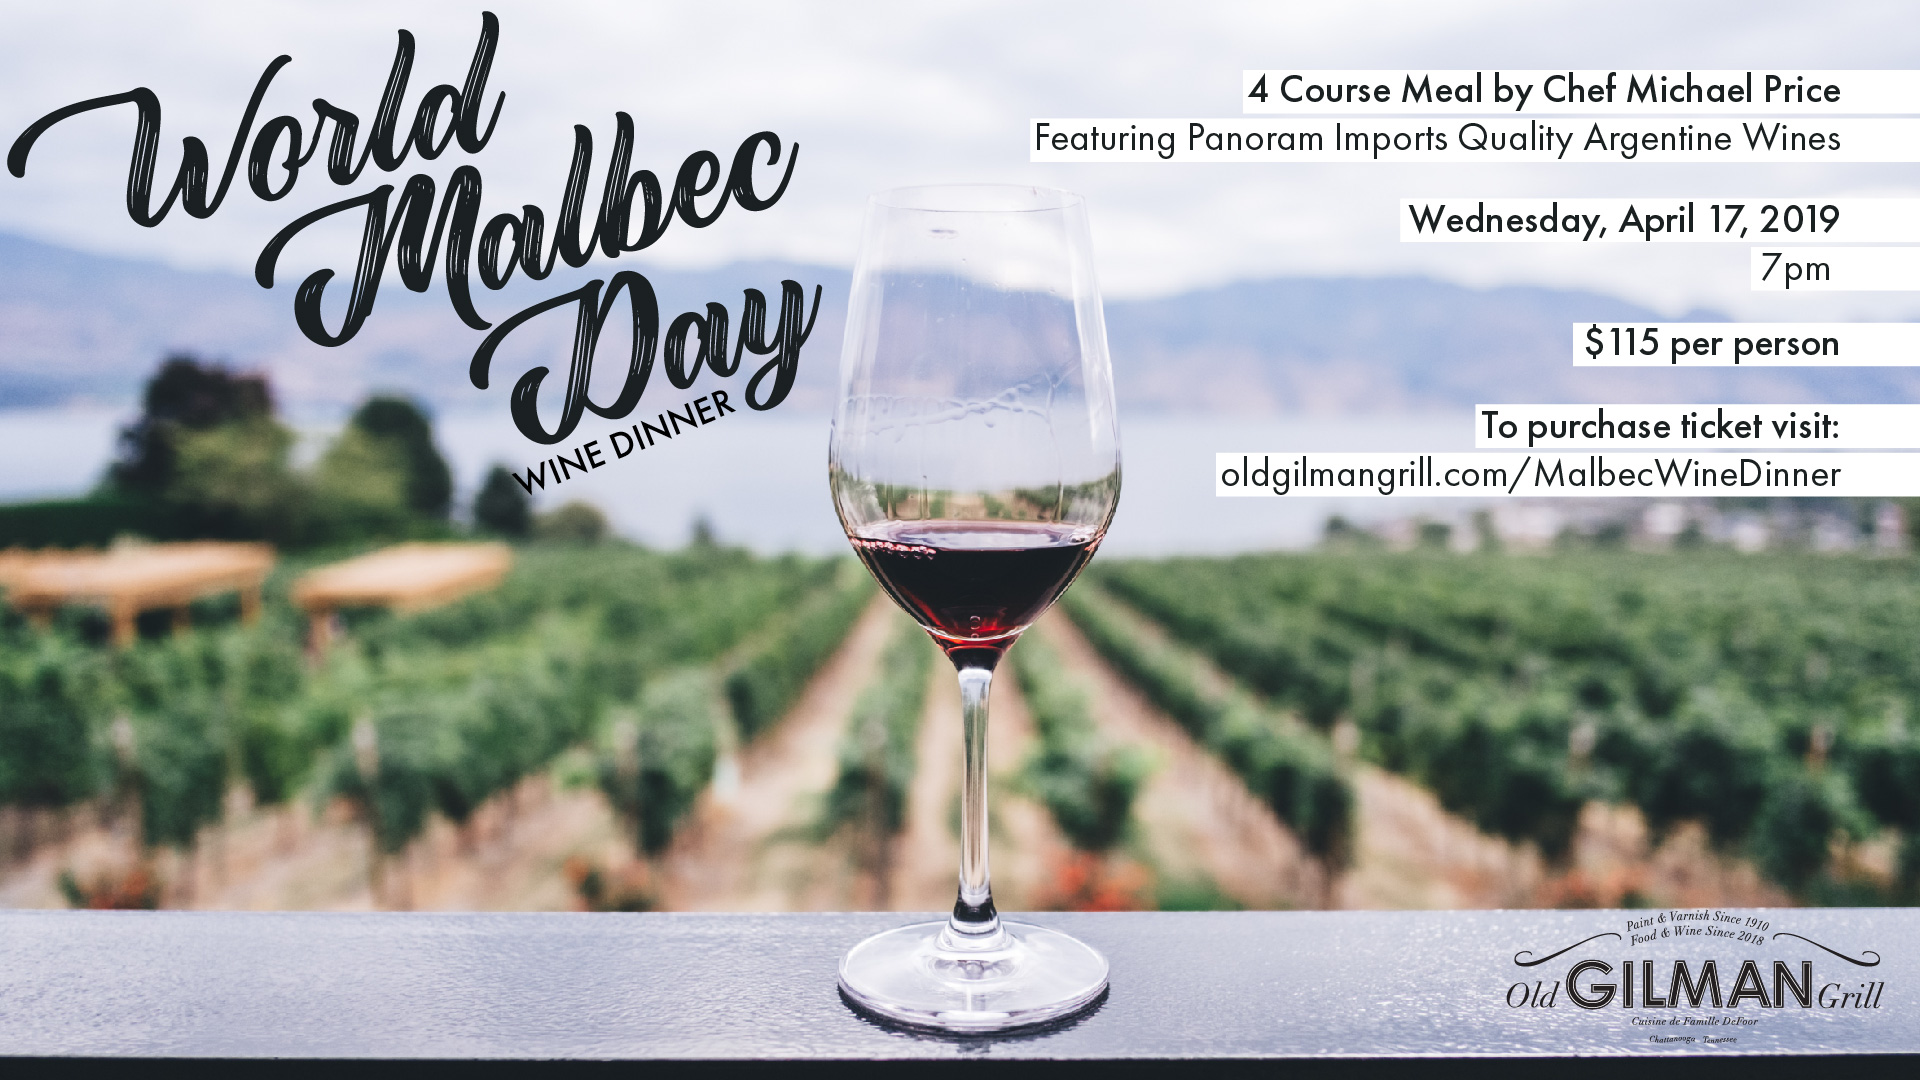 Old Gilman Grill World Malbec Day Wine Dinner